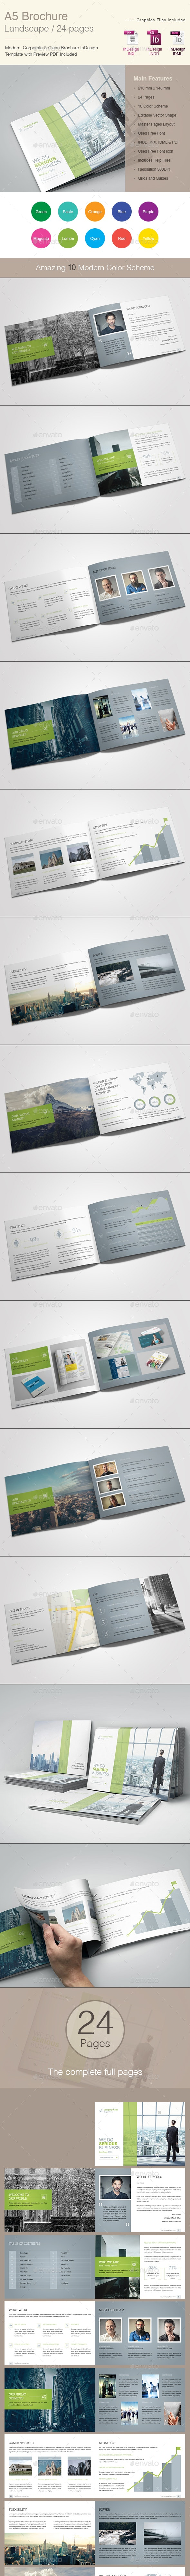 A5 Brochure Landscape - Corporate Brochures